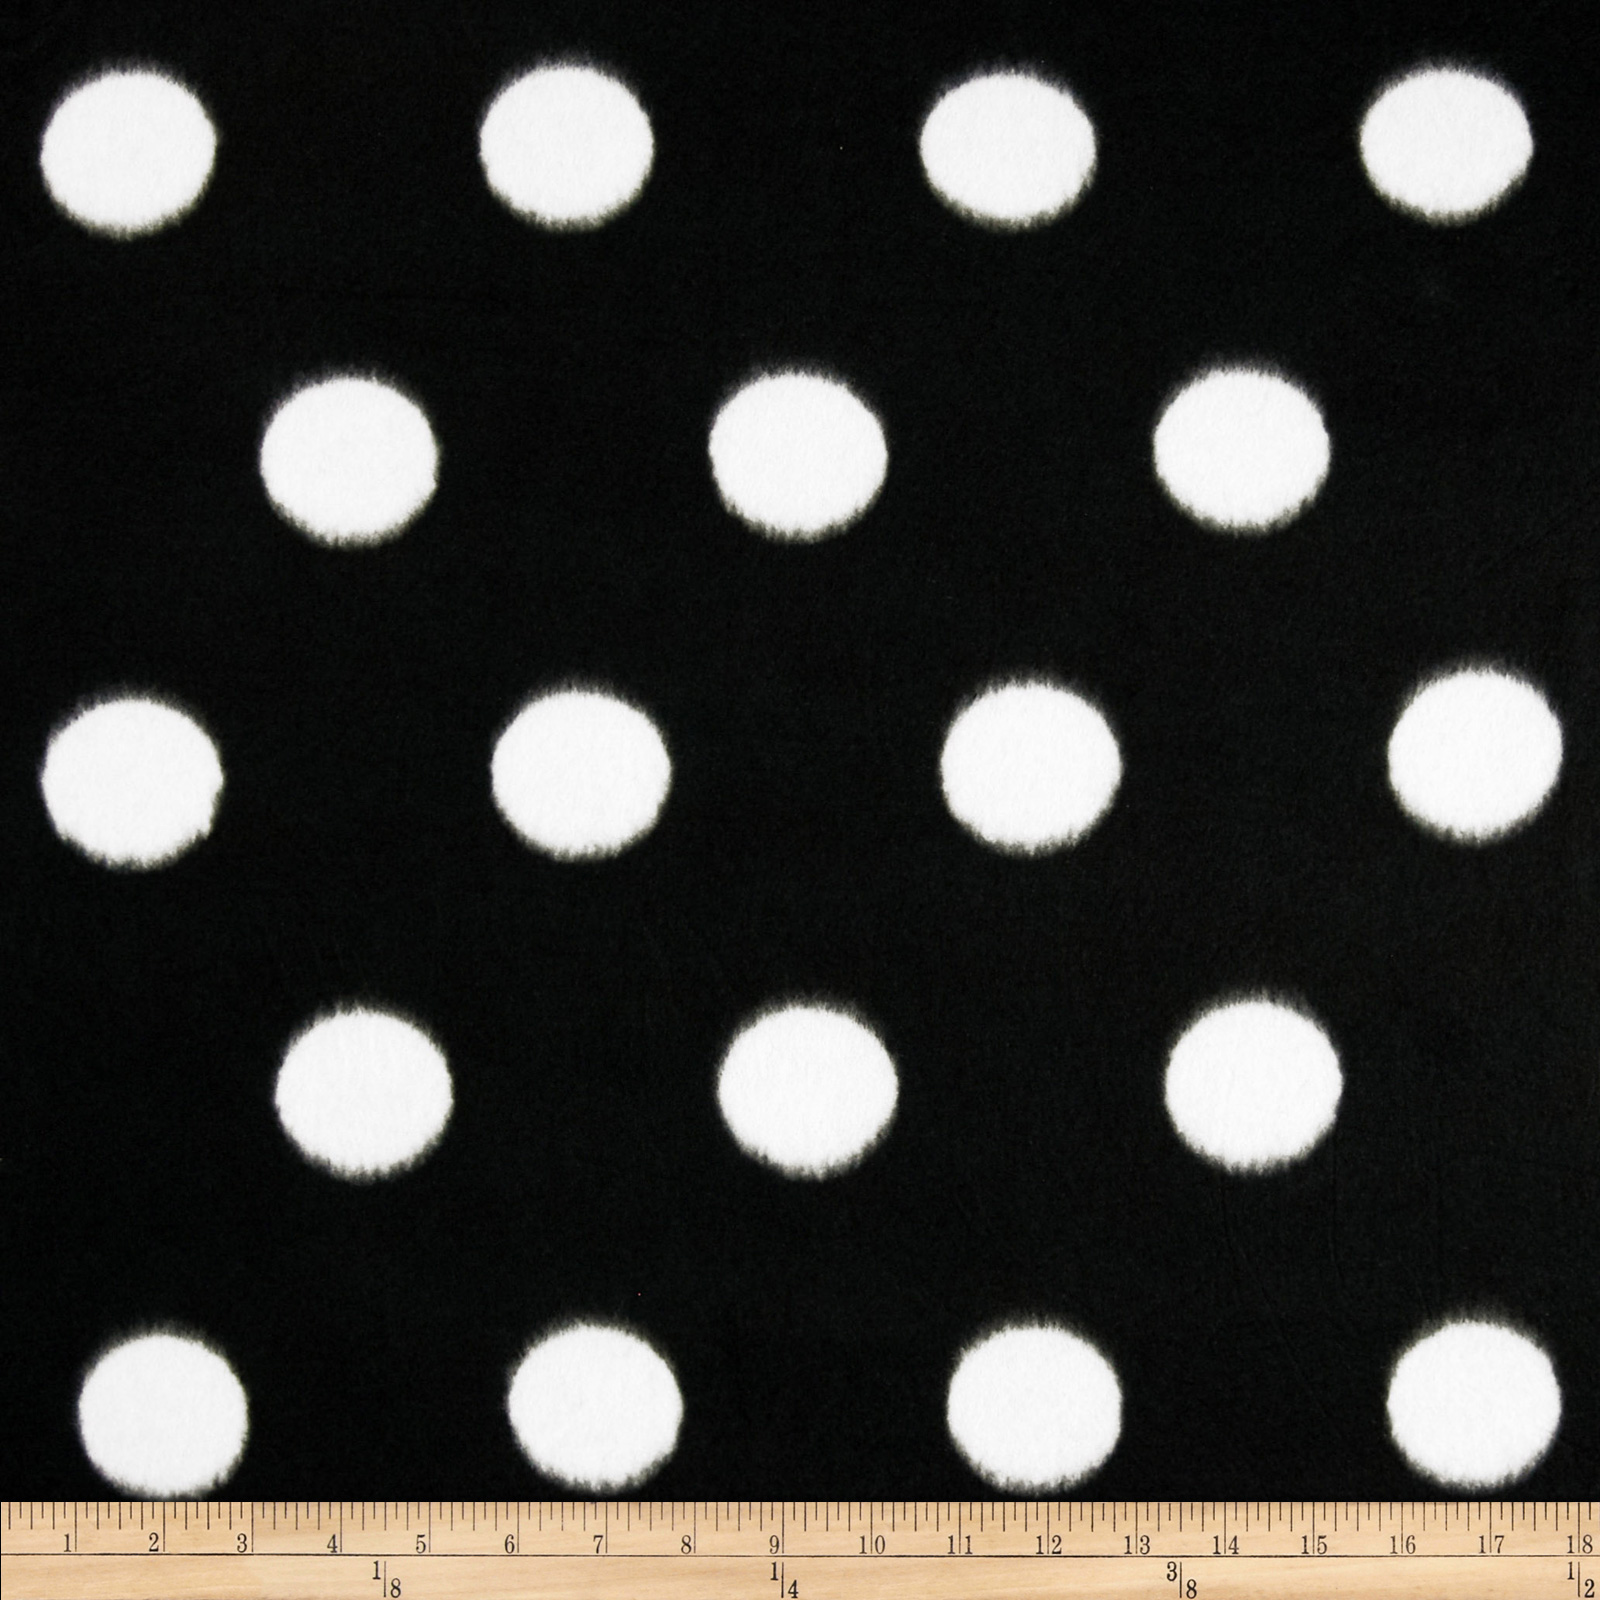 Fleece Print Large Polka Dots Black